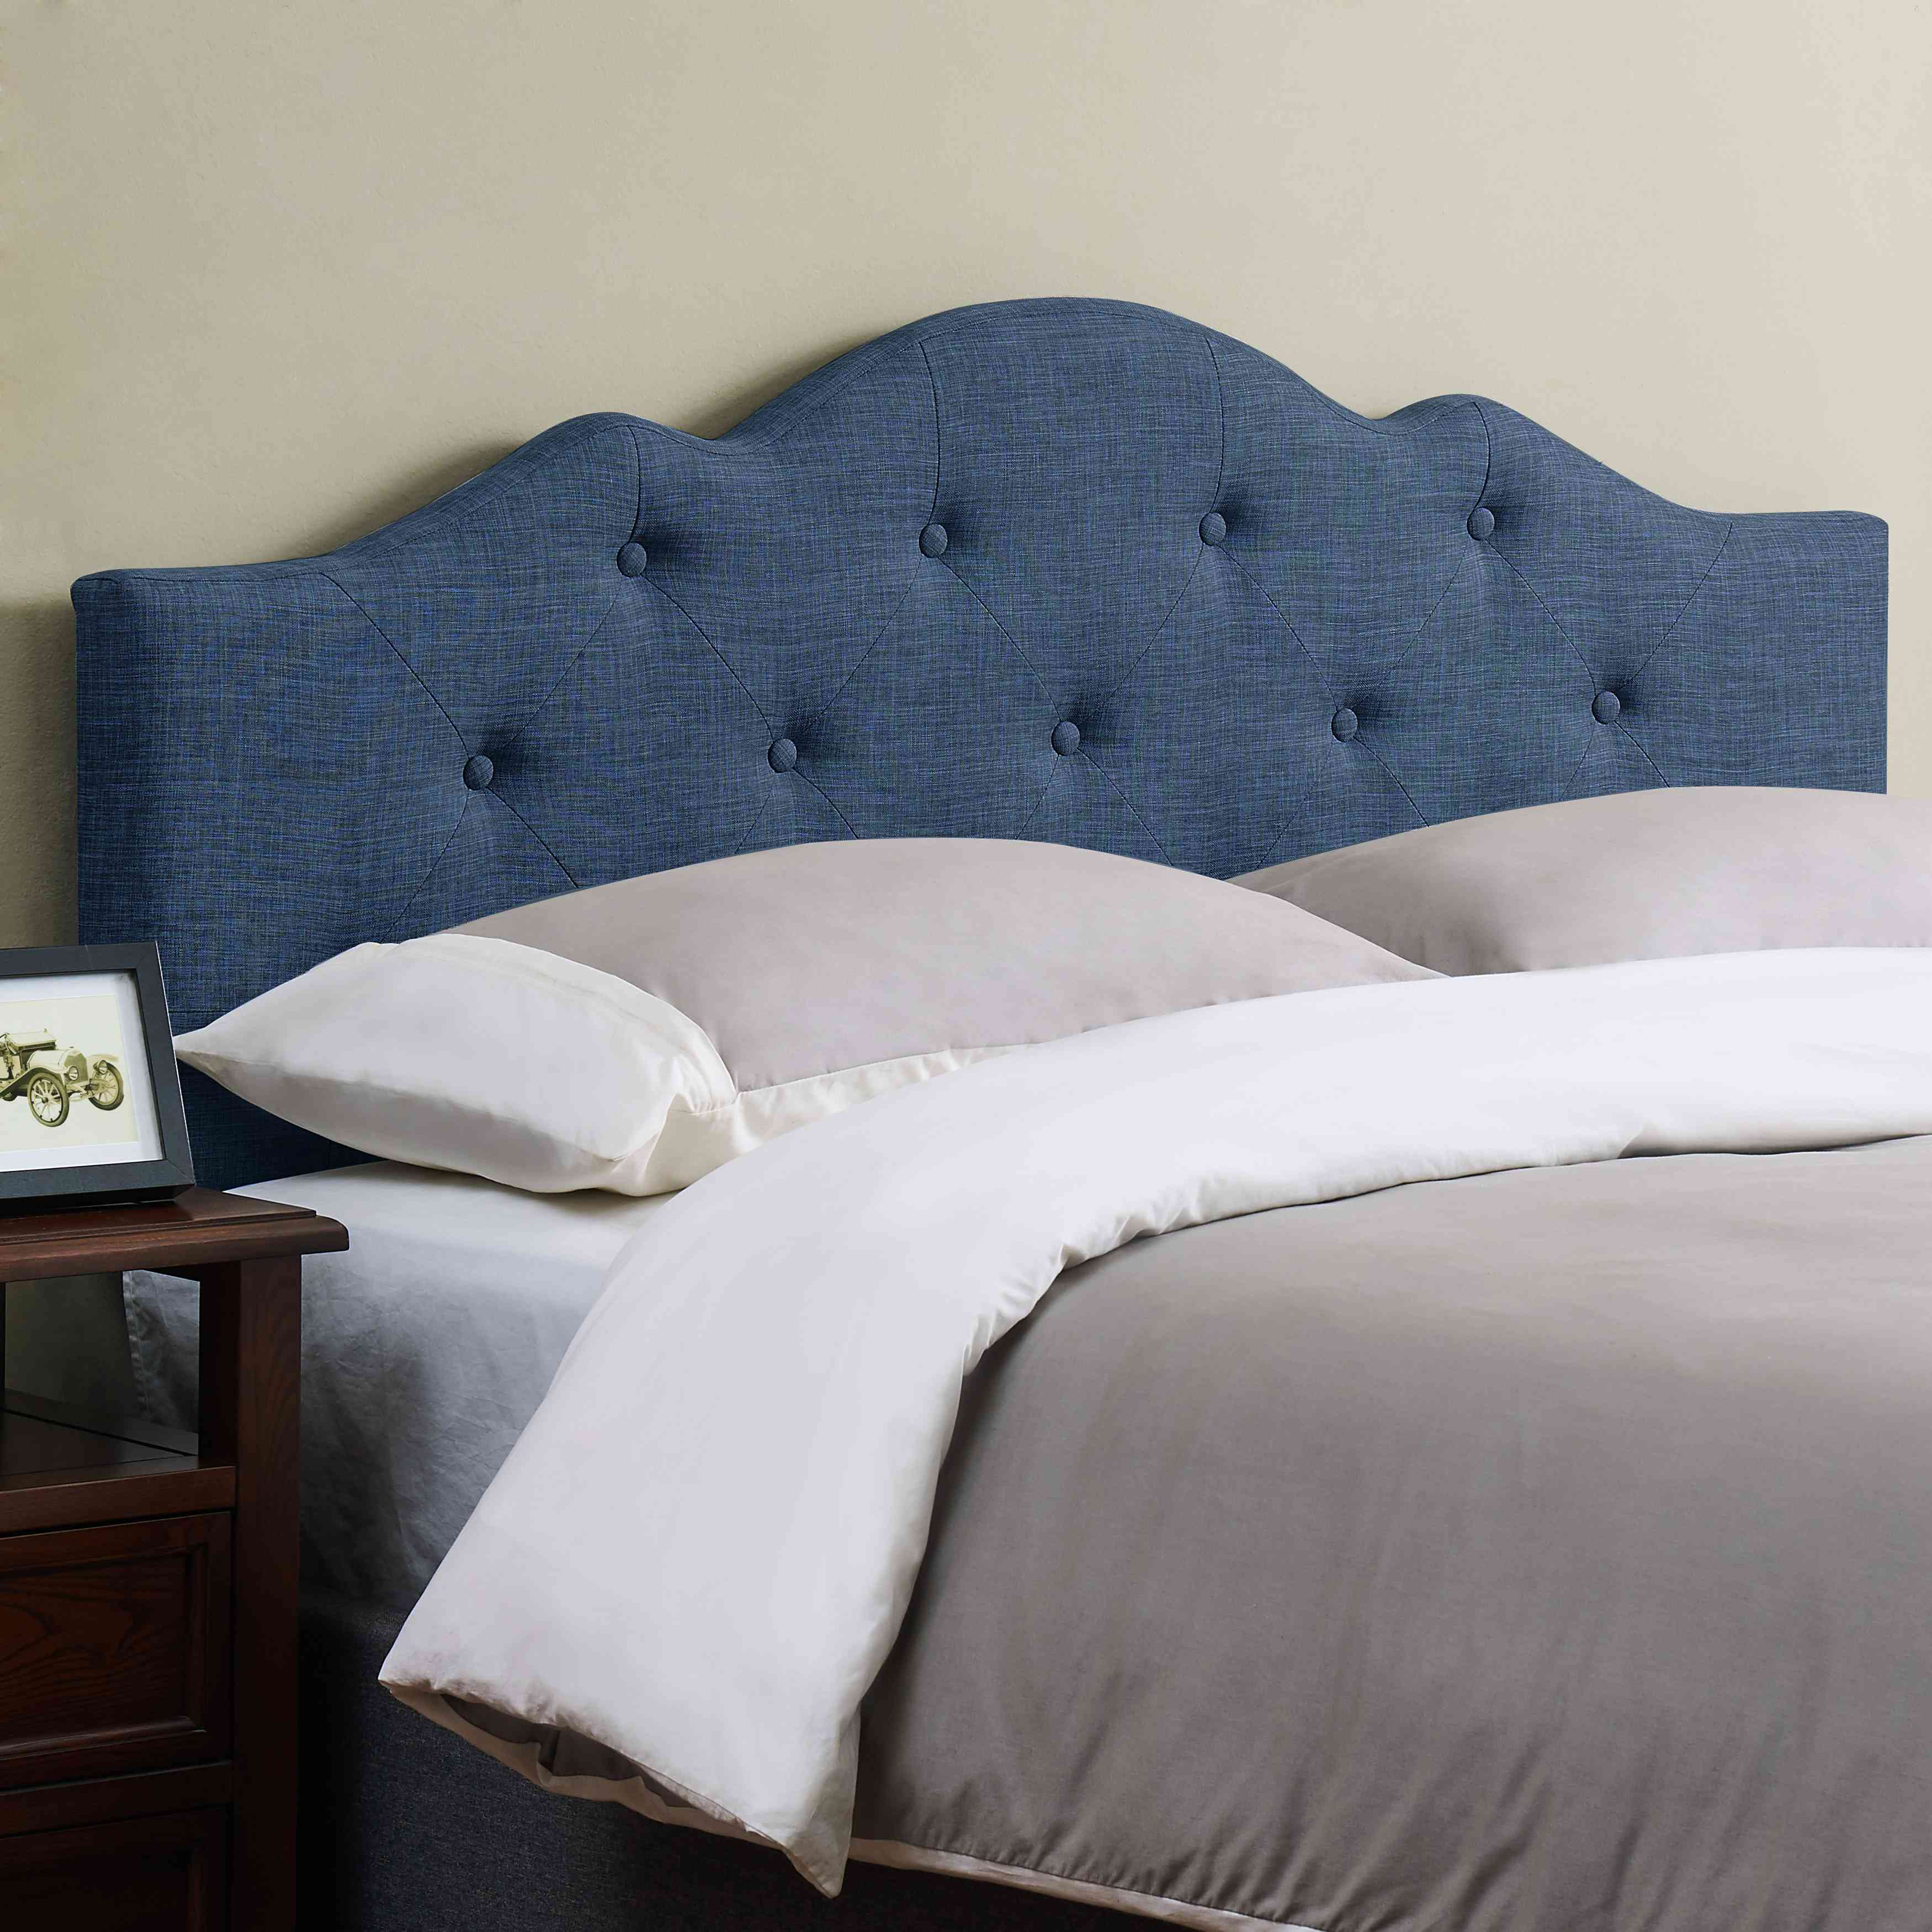 Mainstays Minimal Tufted Rounded Headboard, Multiple Sizes and Colors